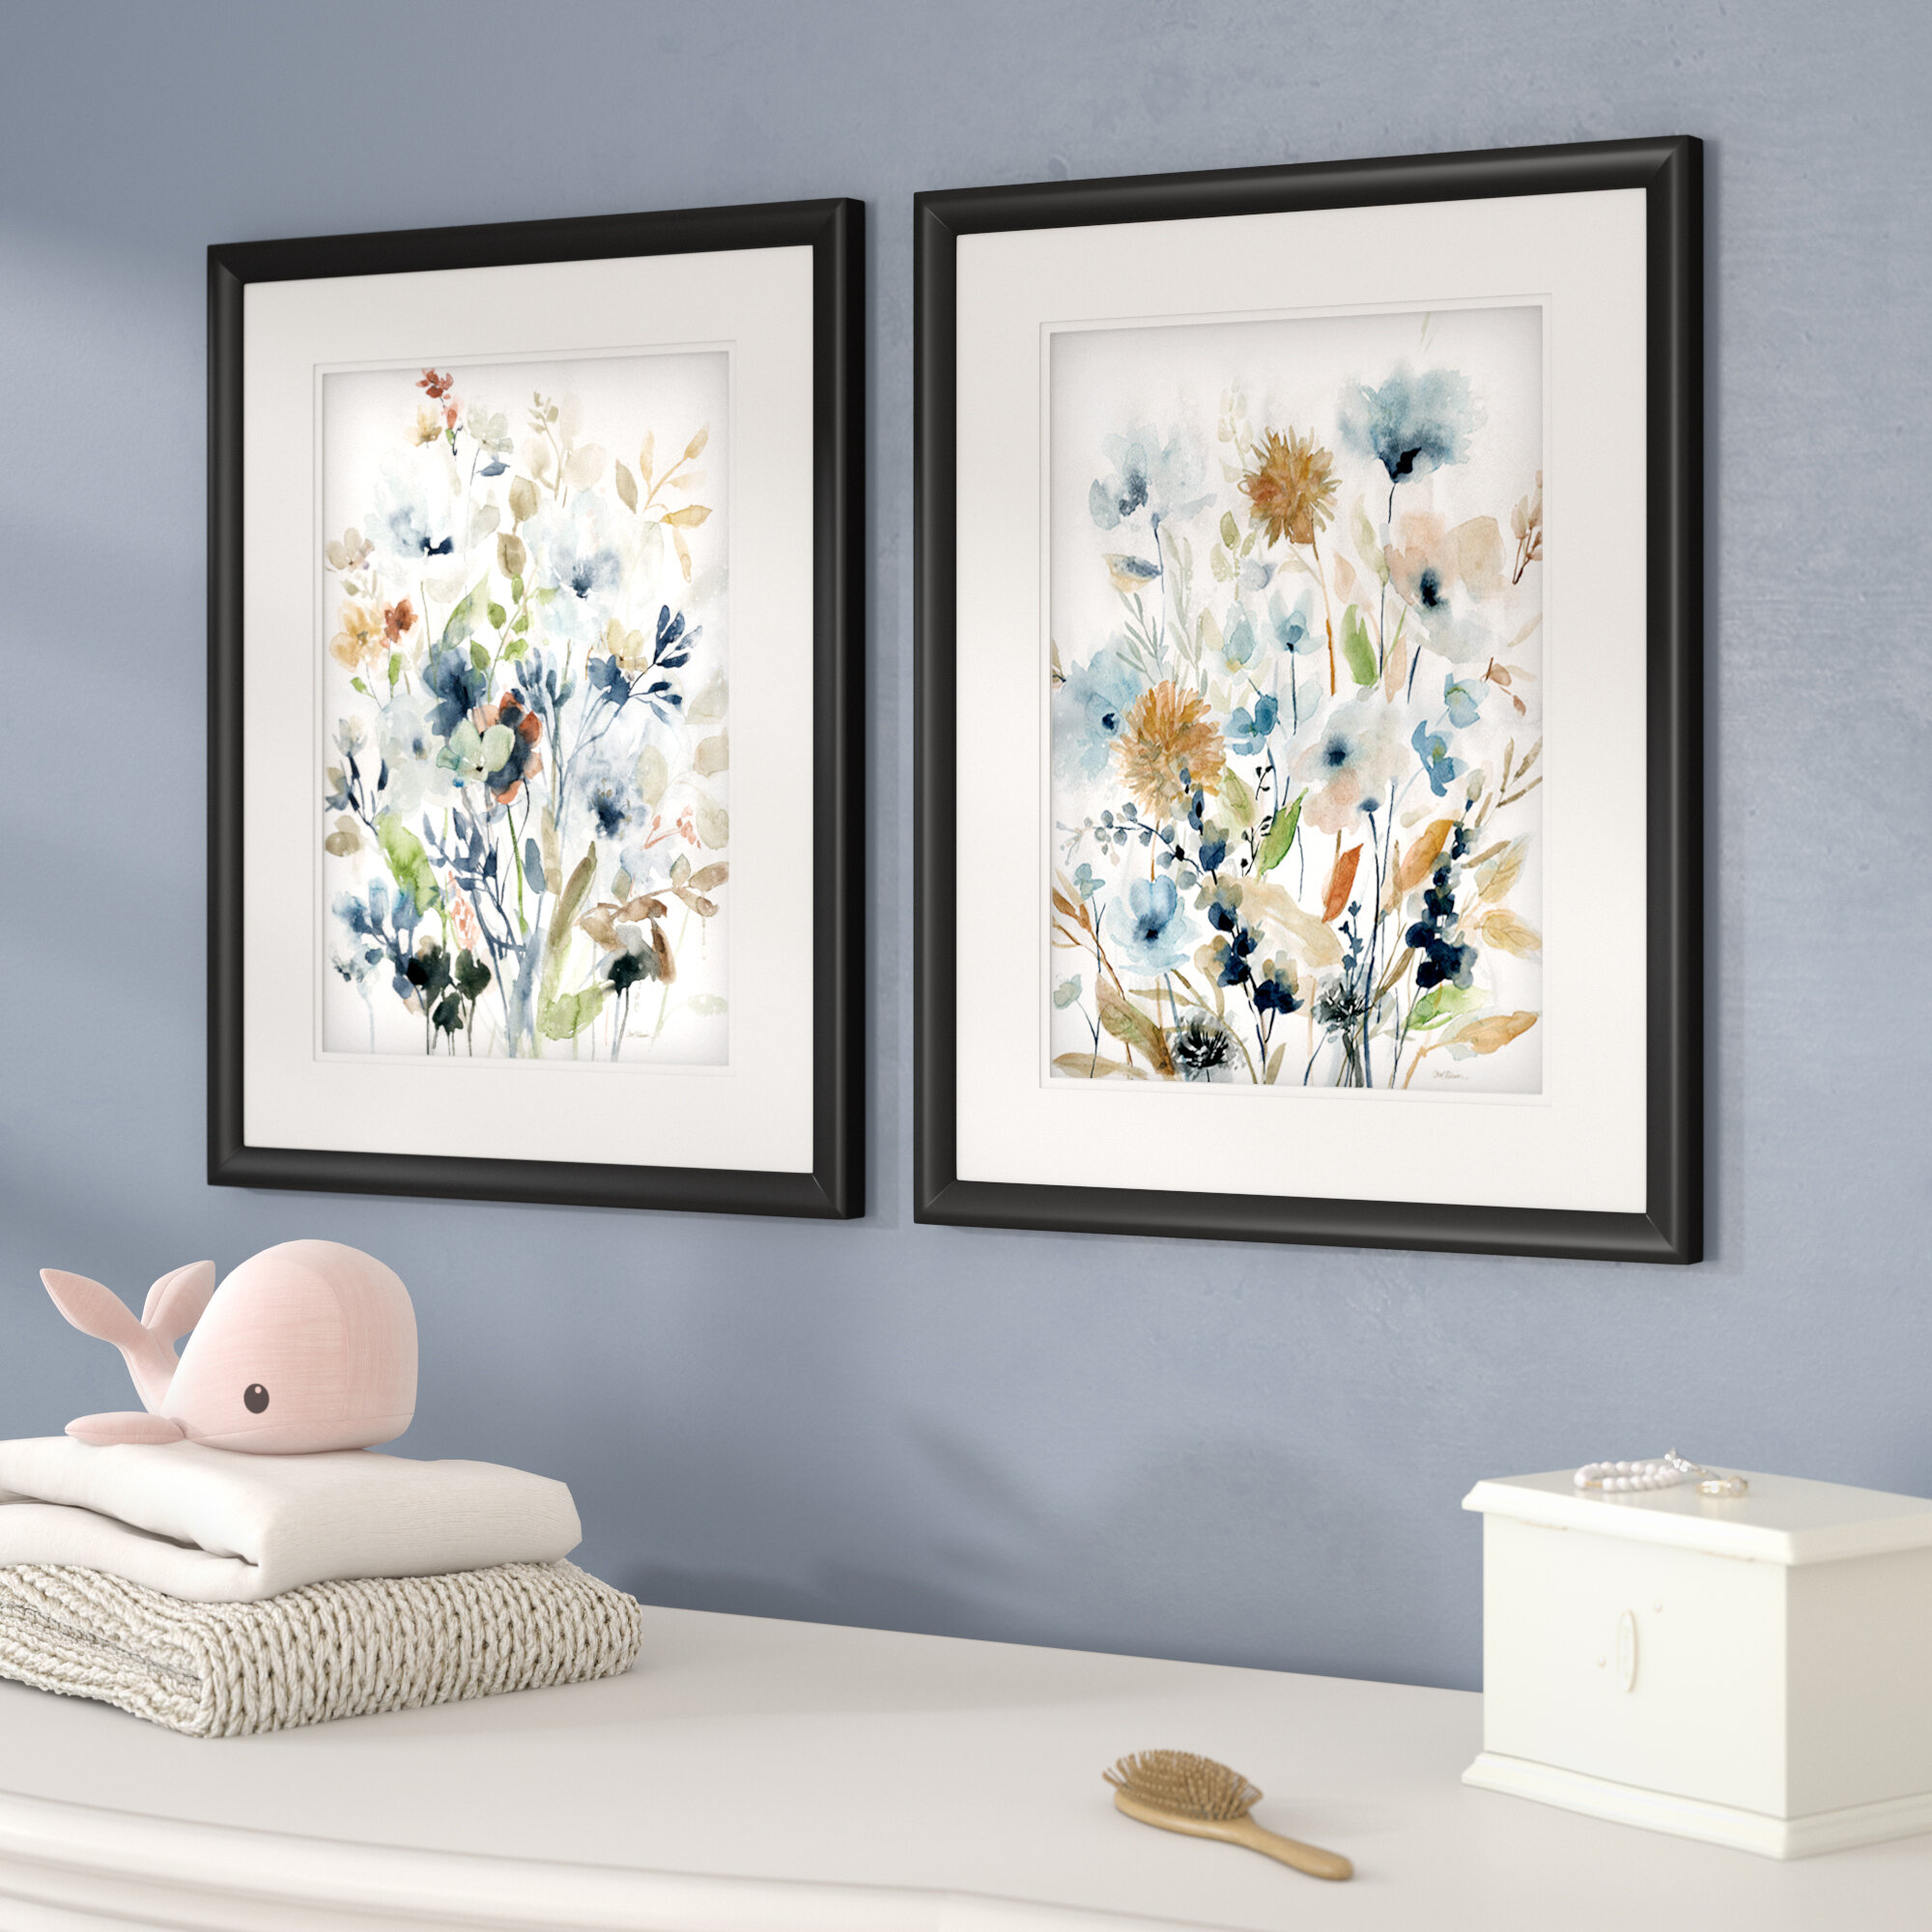 FAMILY Canvas Print Framed Wall Art Picture Photo Image m-A-0960-b-a